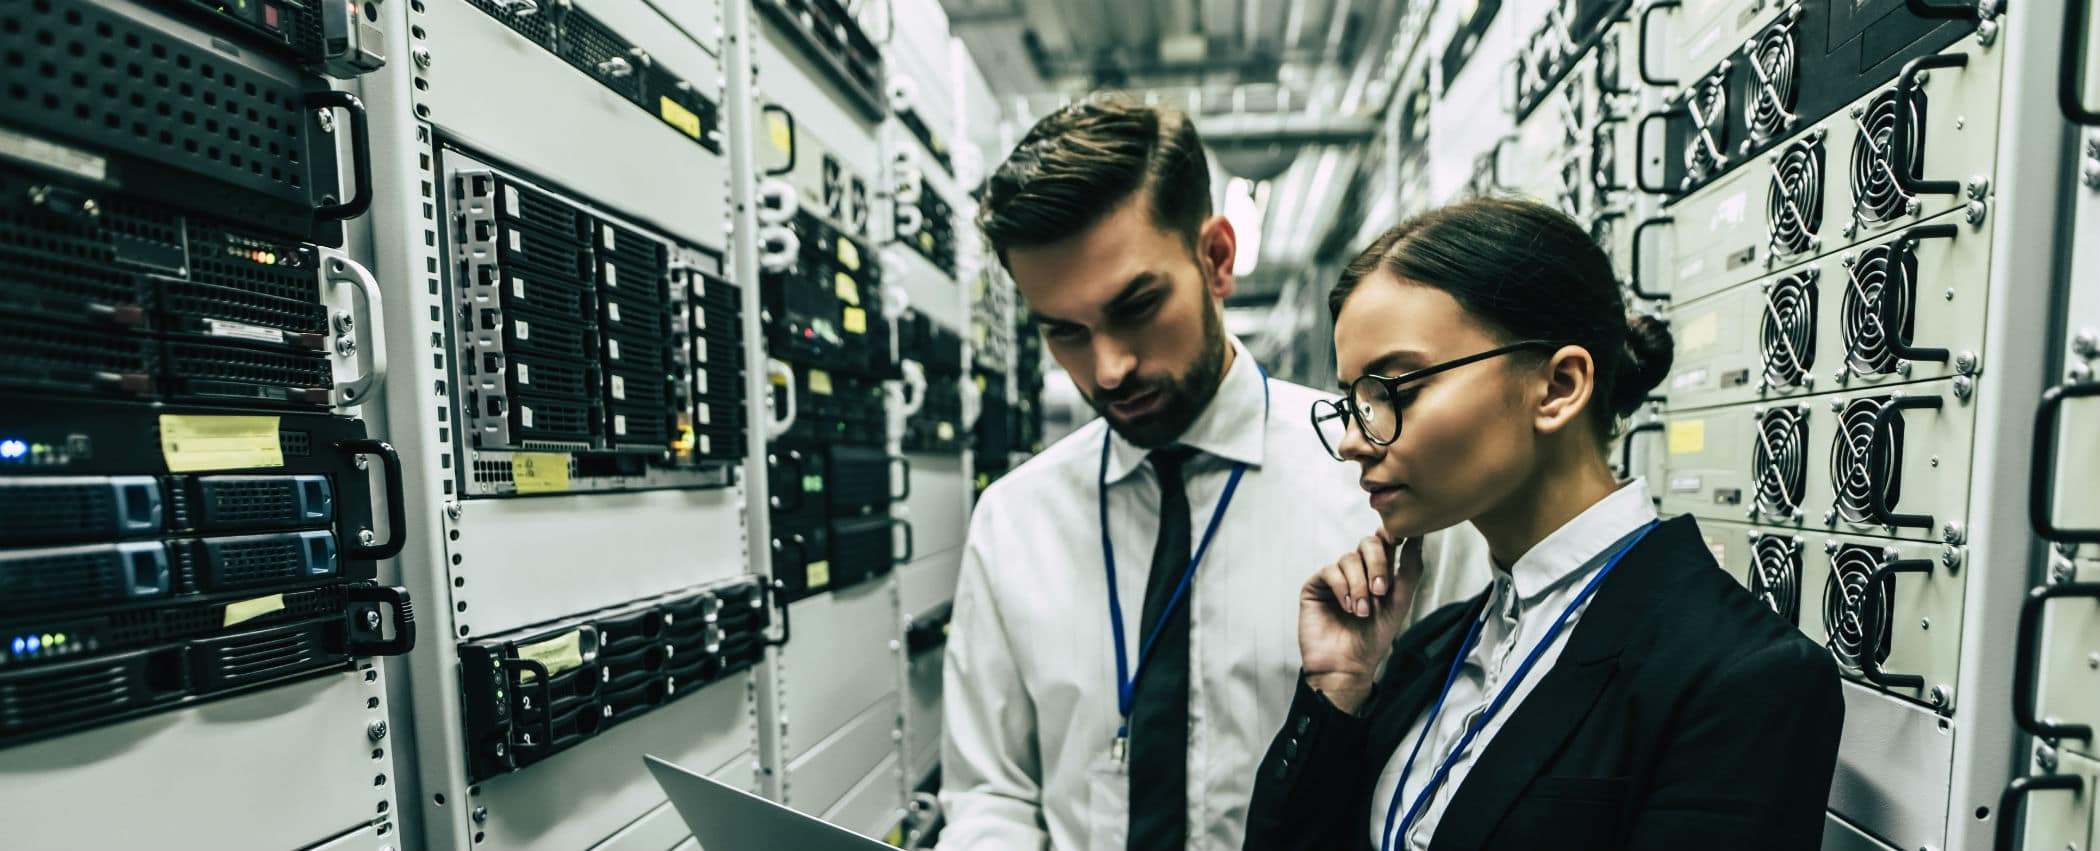 man and woman are working in data center